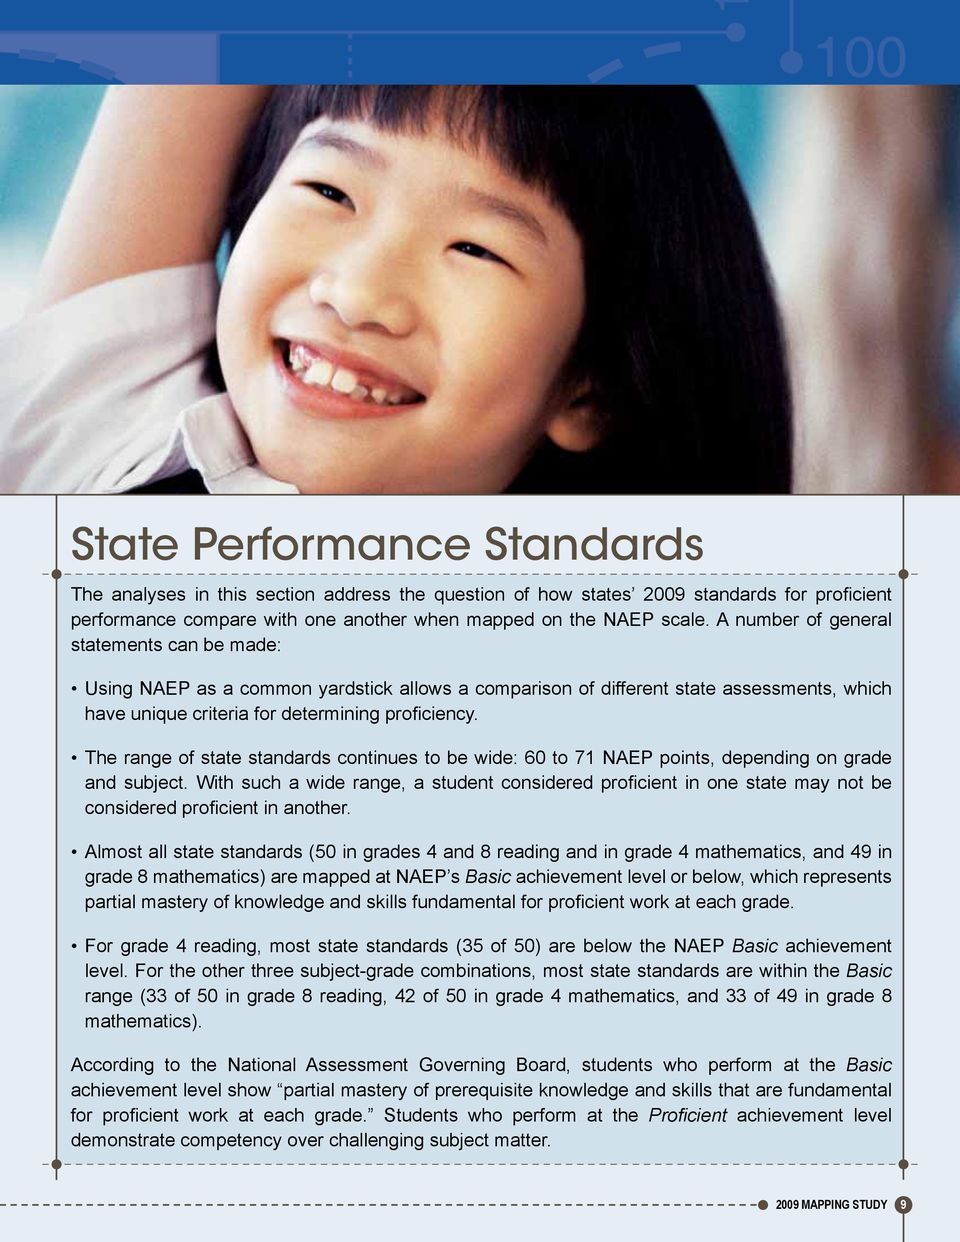 The range of state standards continues to be wide: 60 to 71 NAEP points, depending on grade and subject.